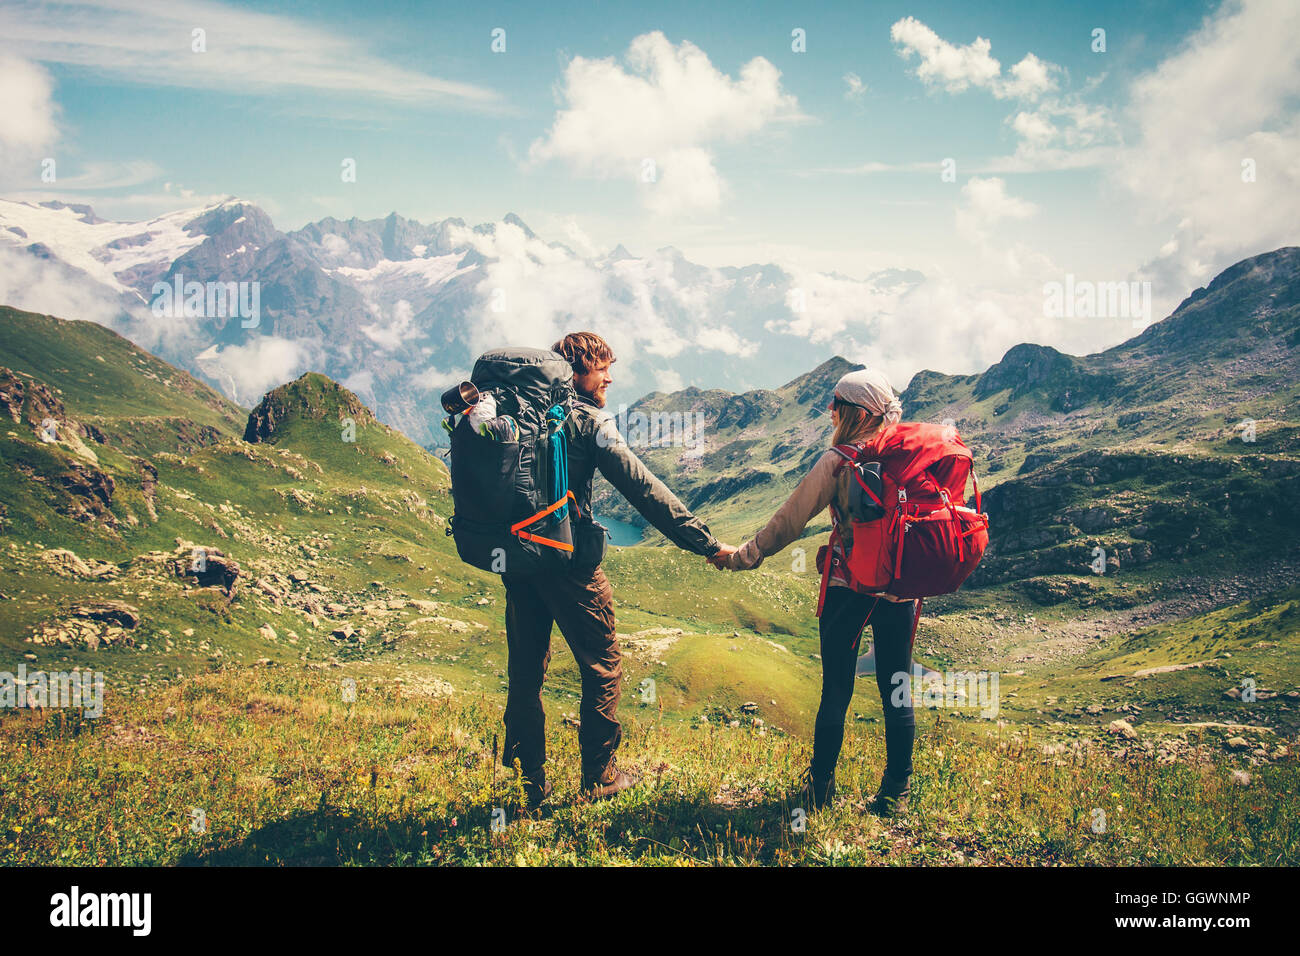 Couple Man and Woman with backpack holding hands mountaineering Travel Lifestyle summer vacations concept mountains - Stock Image